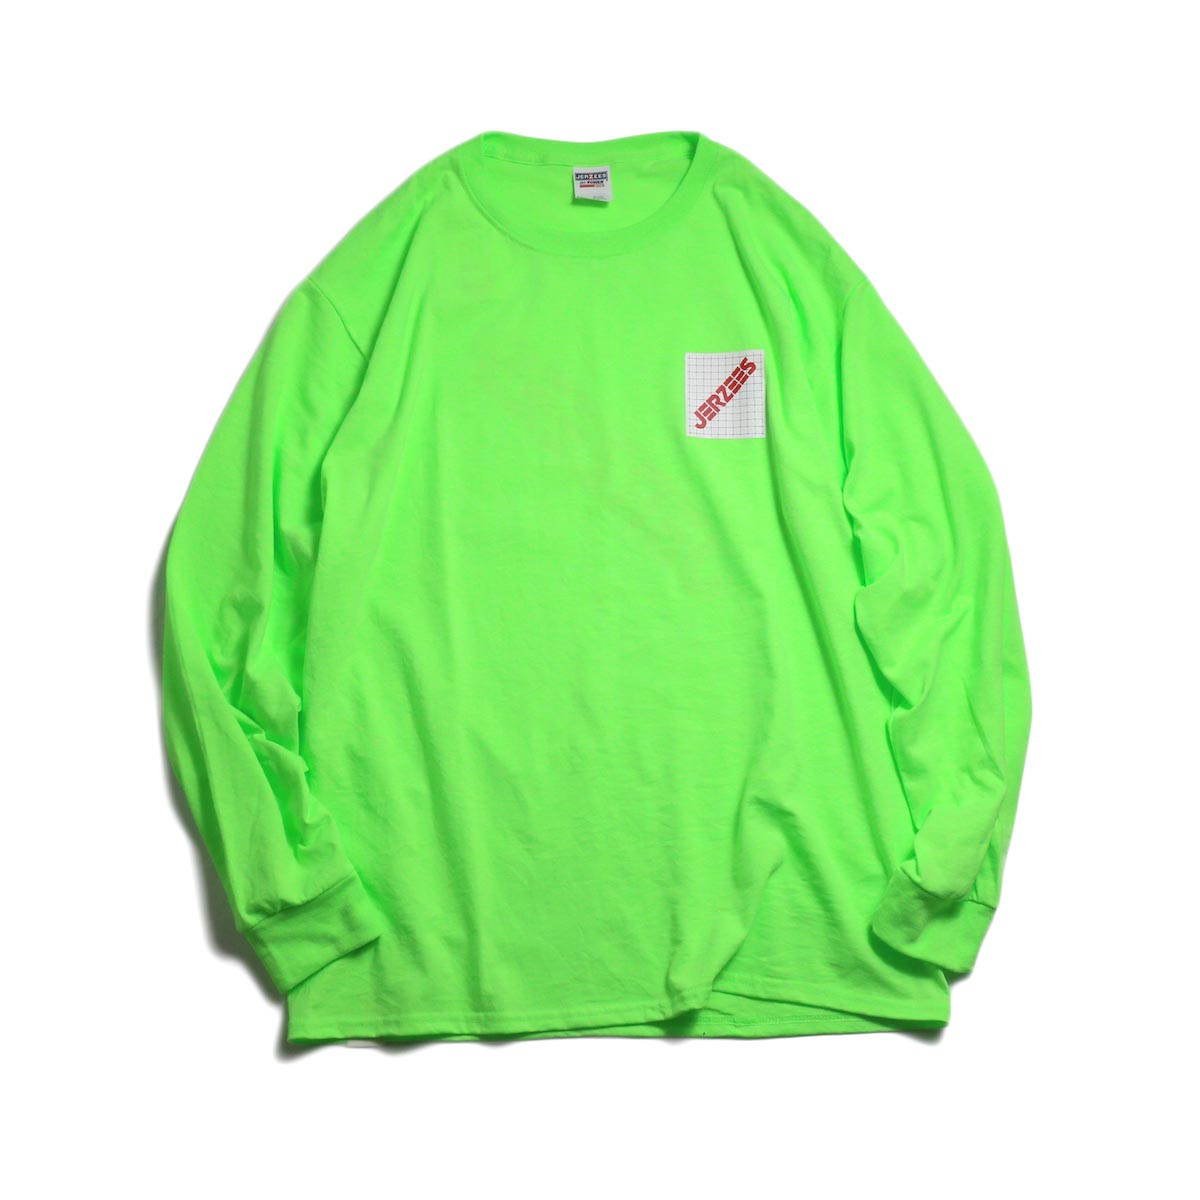 N.HOOLYWOOD × JERZEES  / 191-CS43-070 Long Sleeve Tee -Green 正面